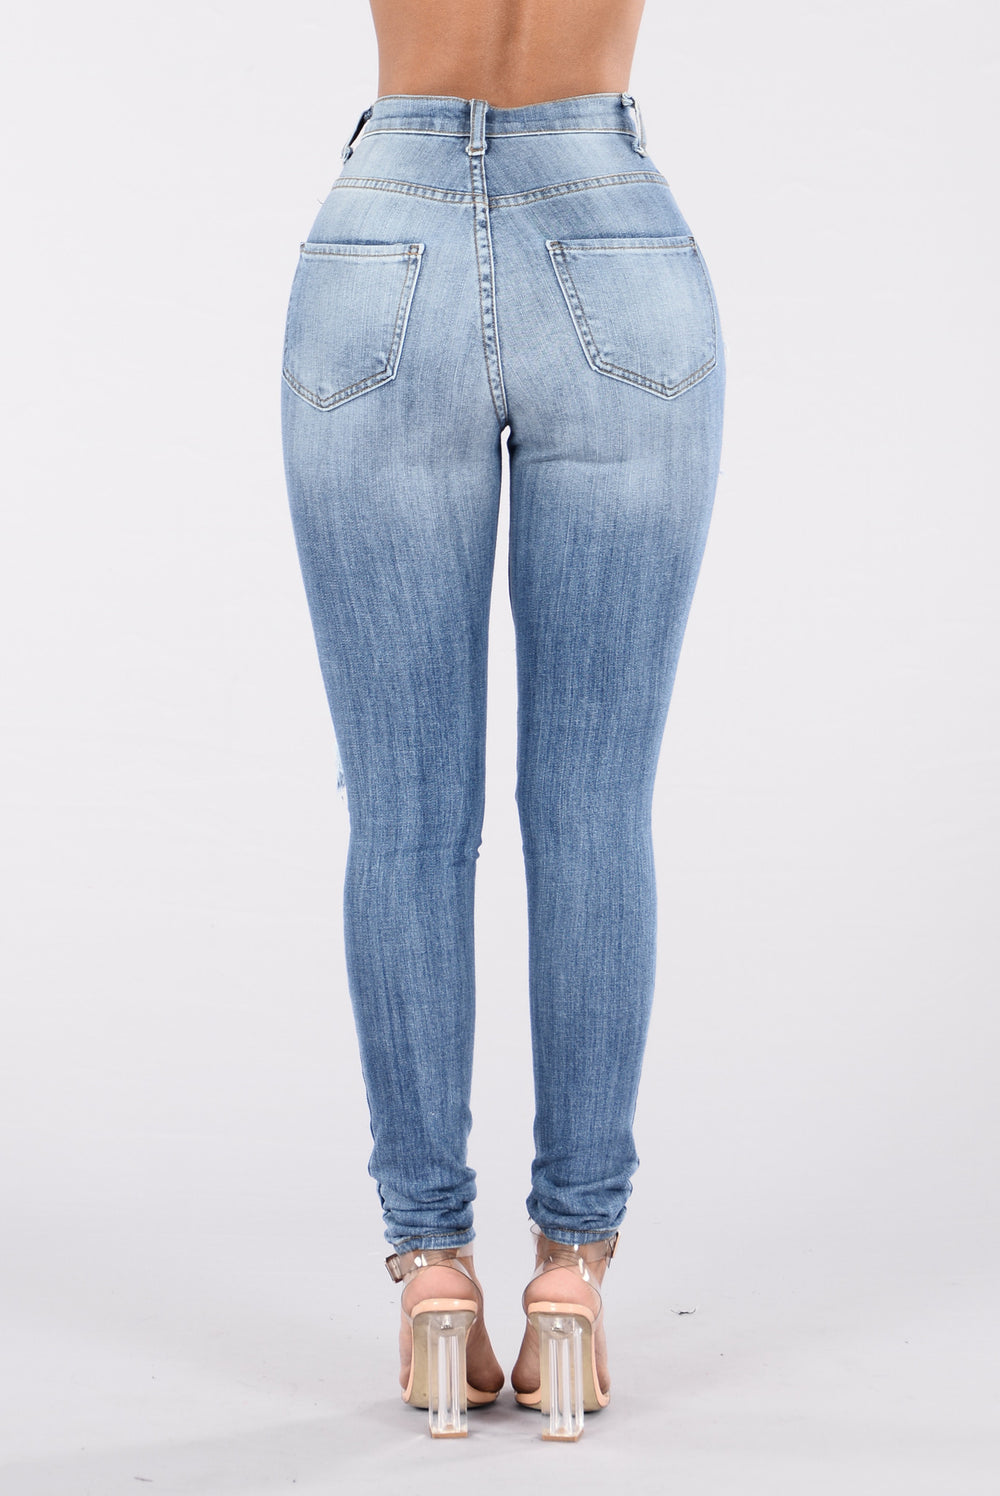 Jump Ship Jeans - Medium Dark